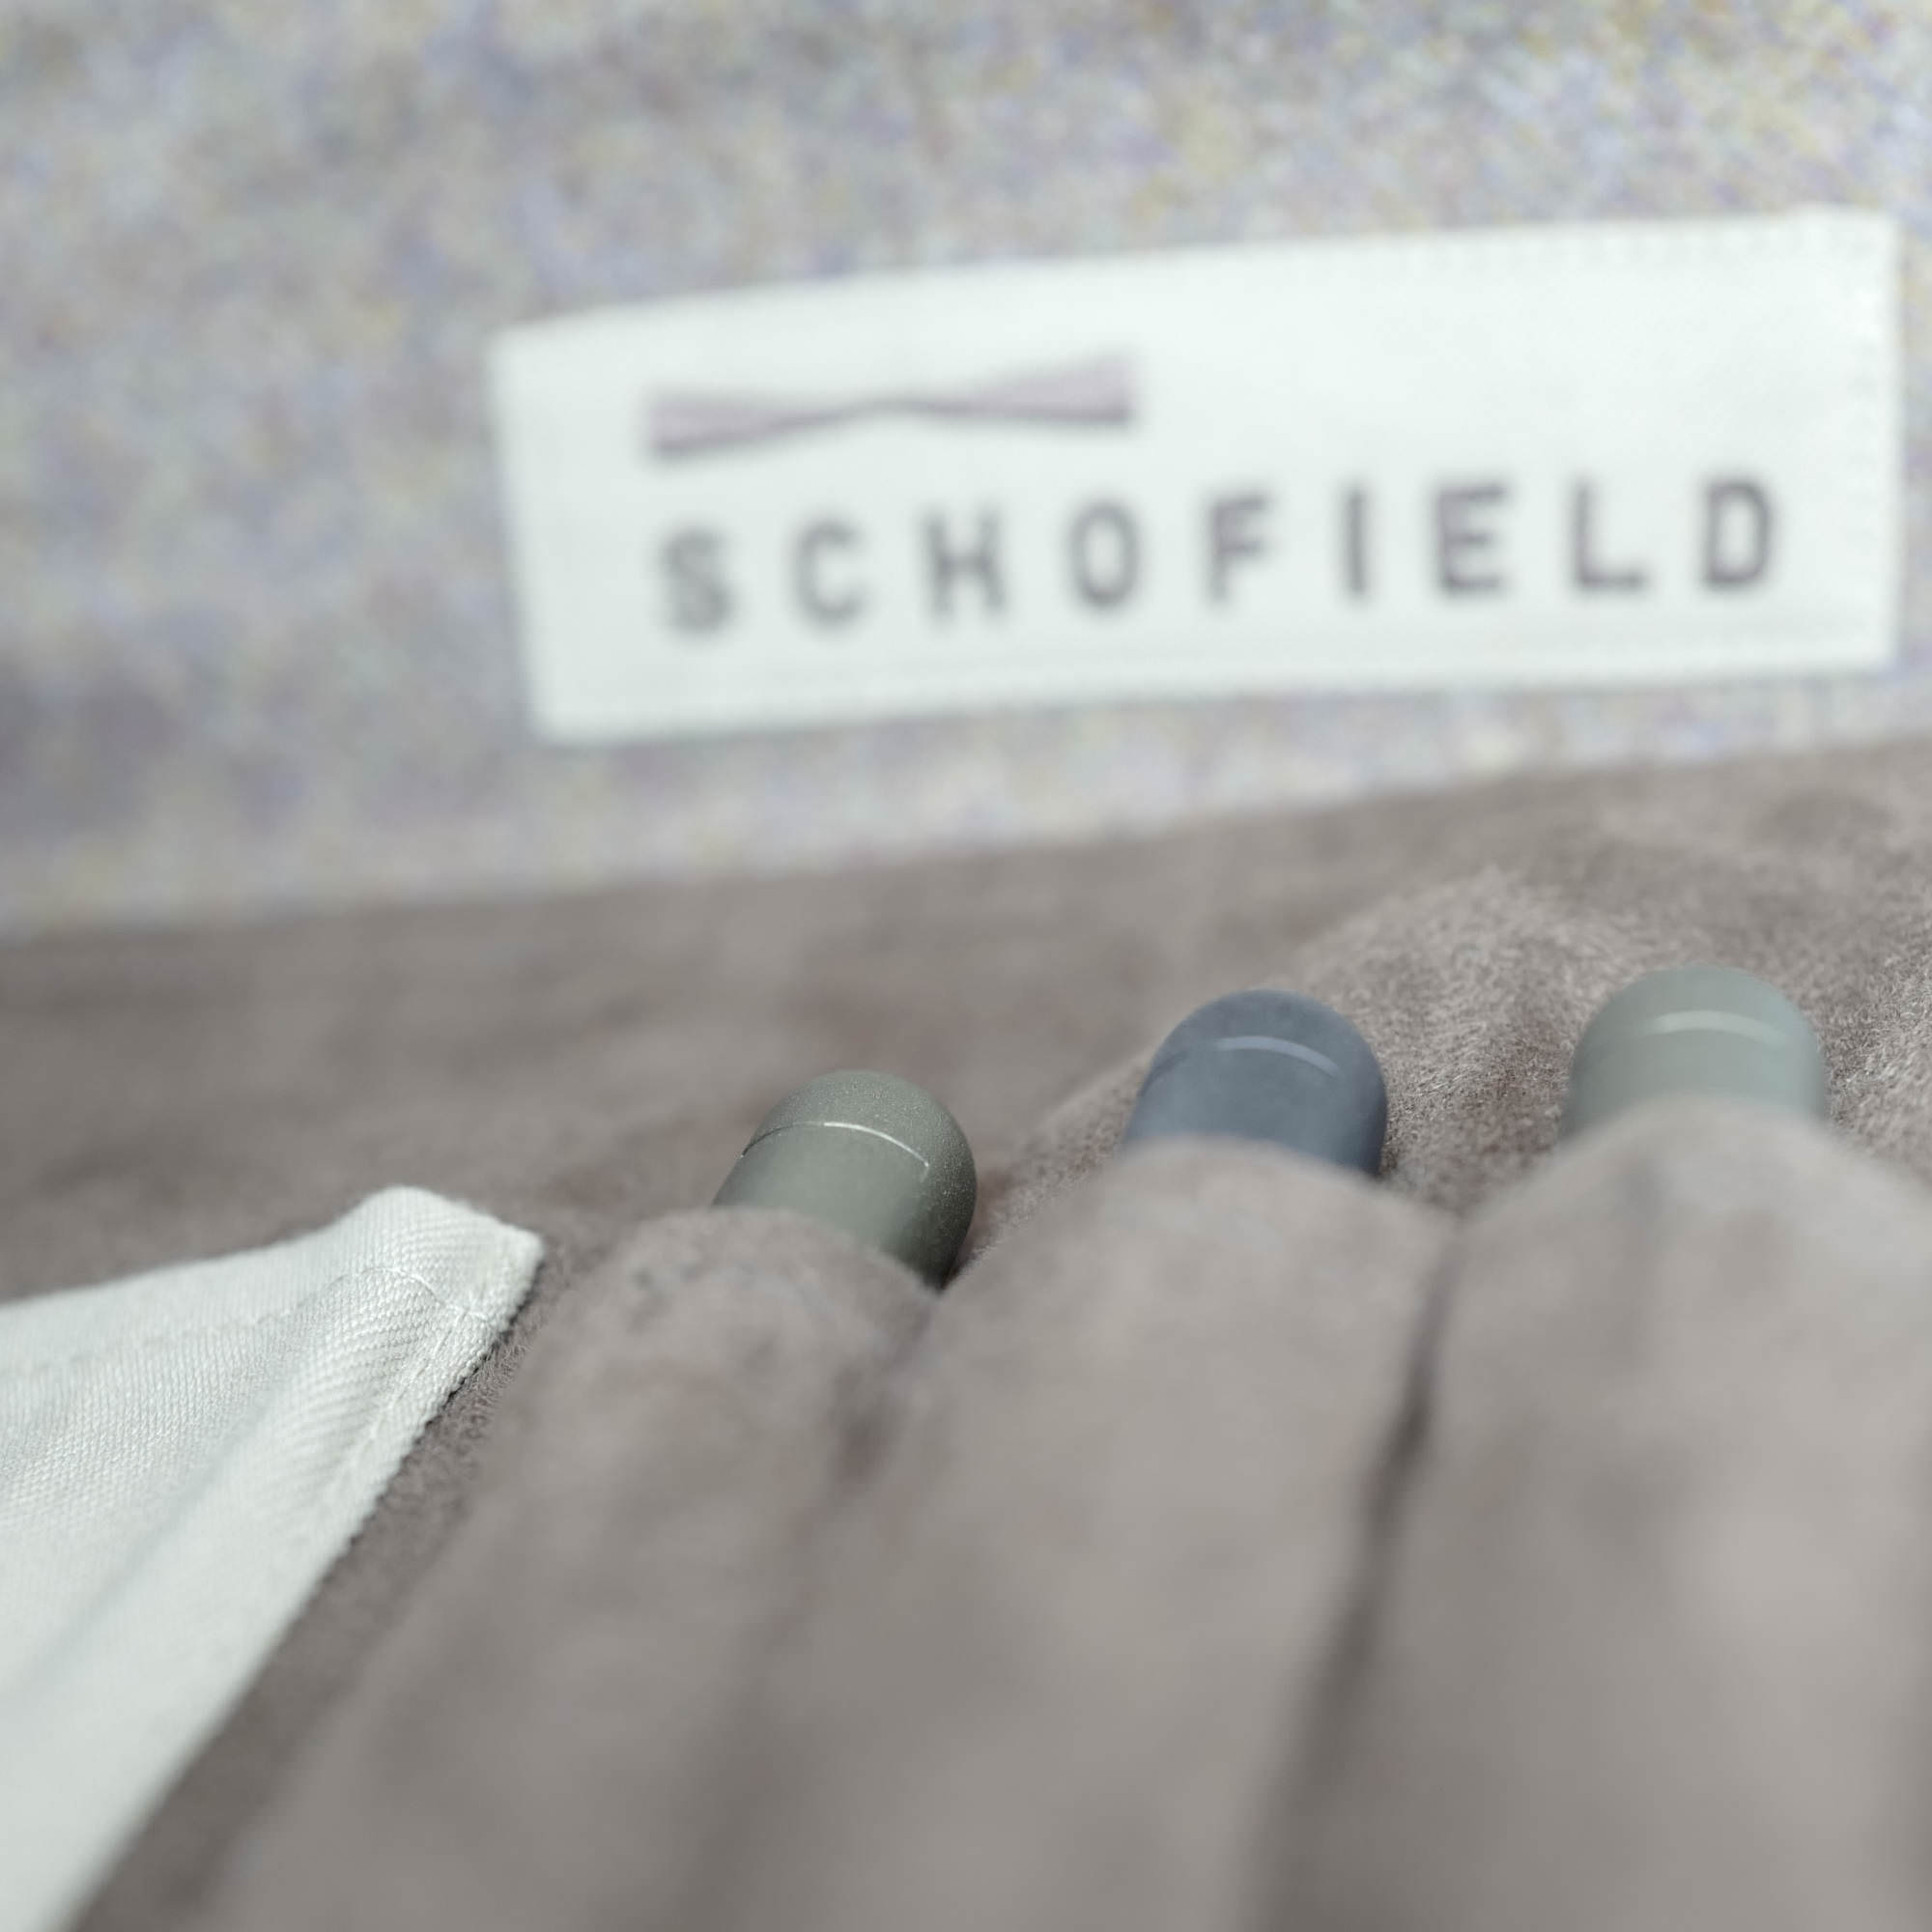 Schofield Drivers in Kit